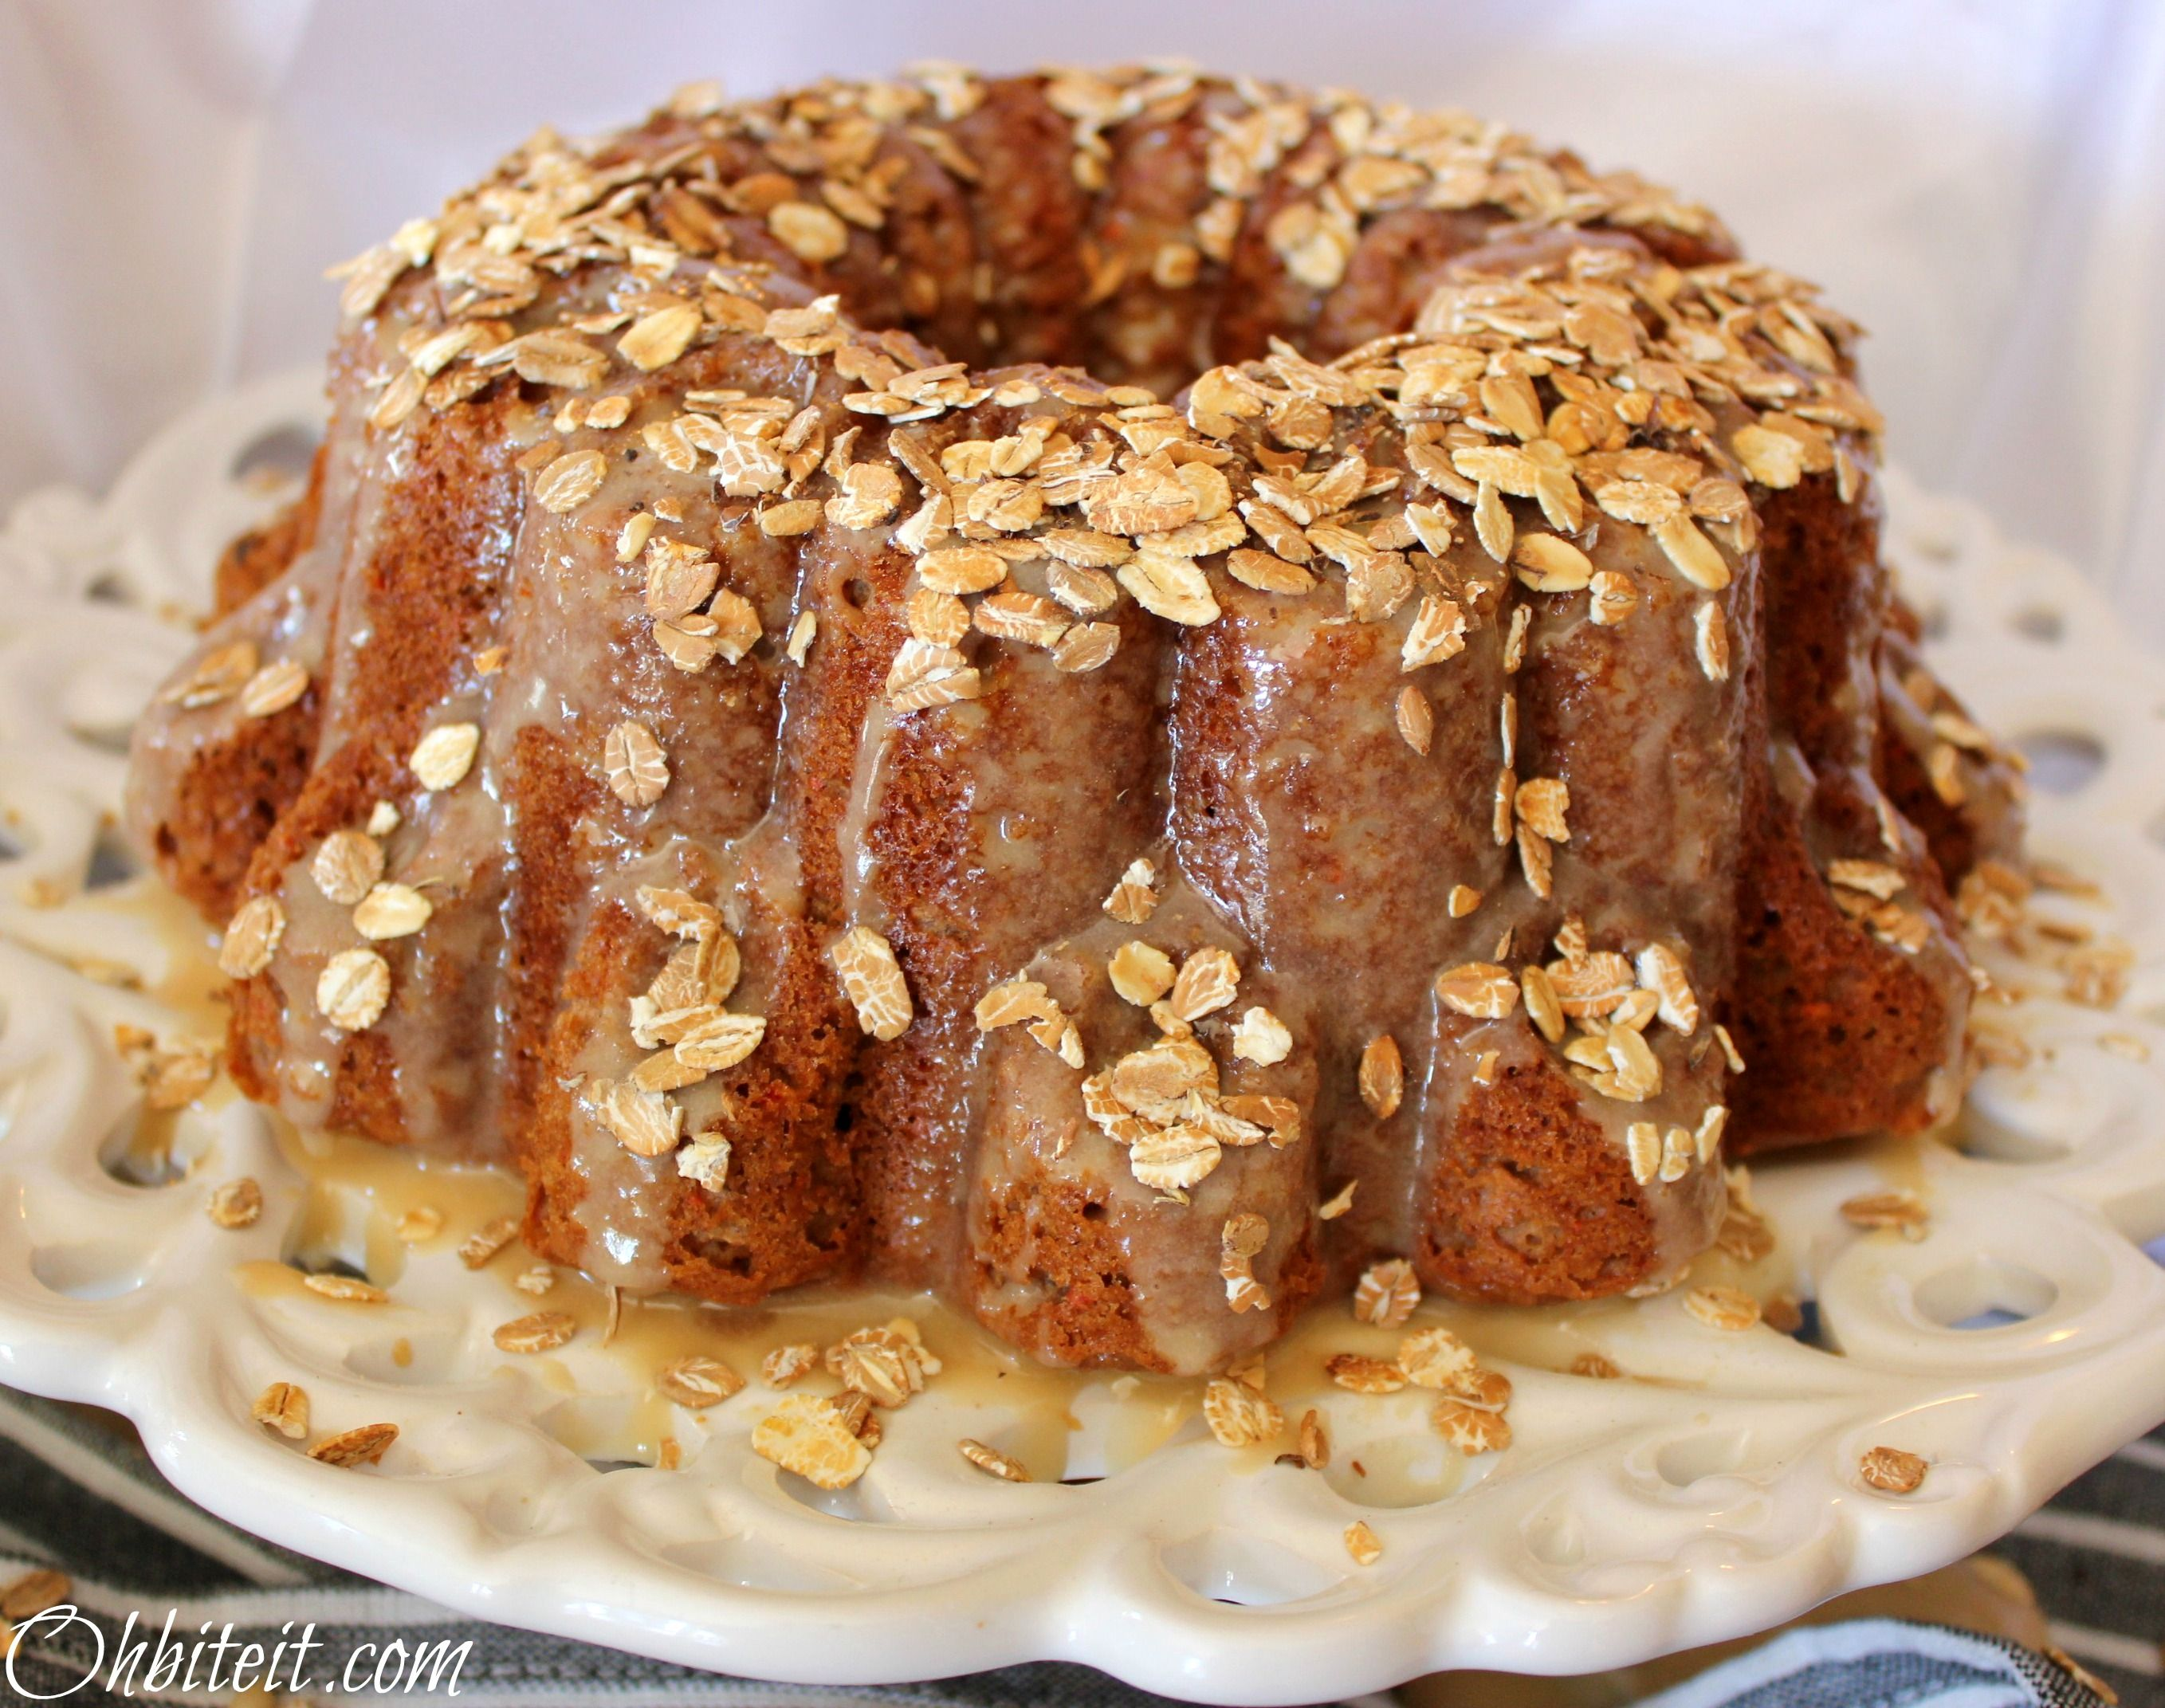 Want some?  Oatmeal cake